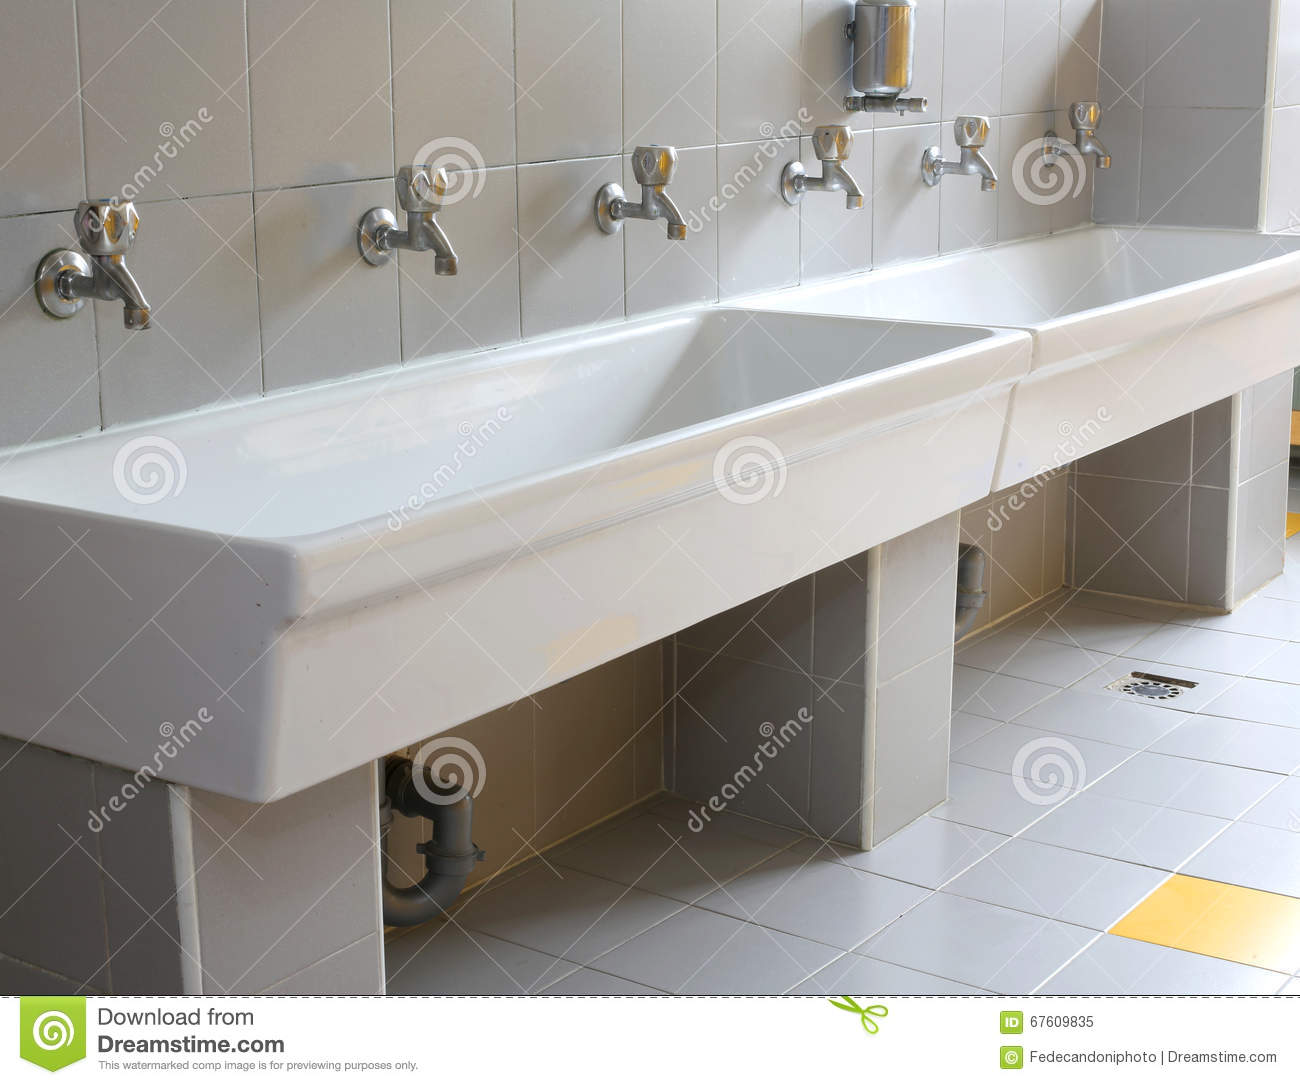 School Bathroom Sinks : Series Of Small Taps In The Bathroom Of Kindergarten Stock Photo ...